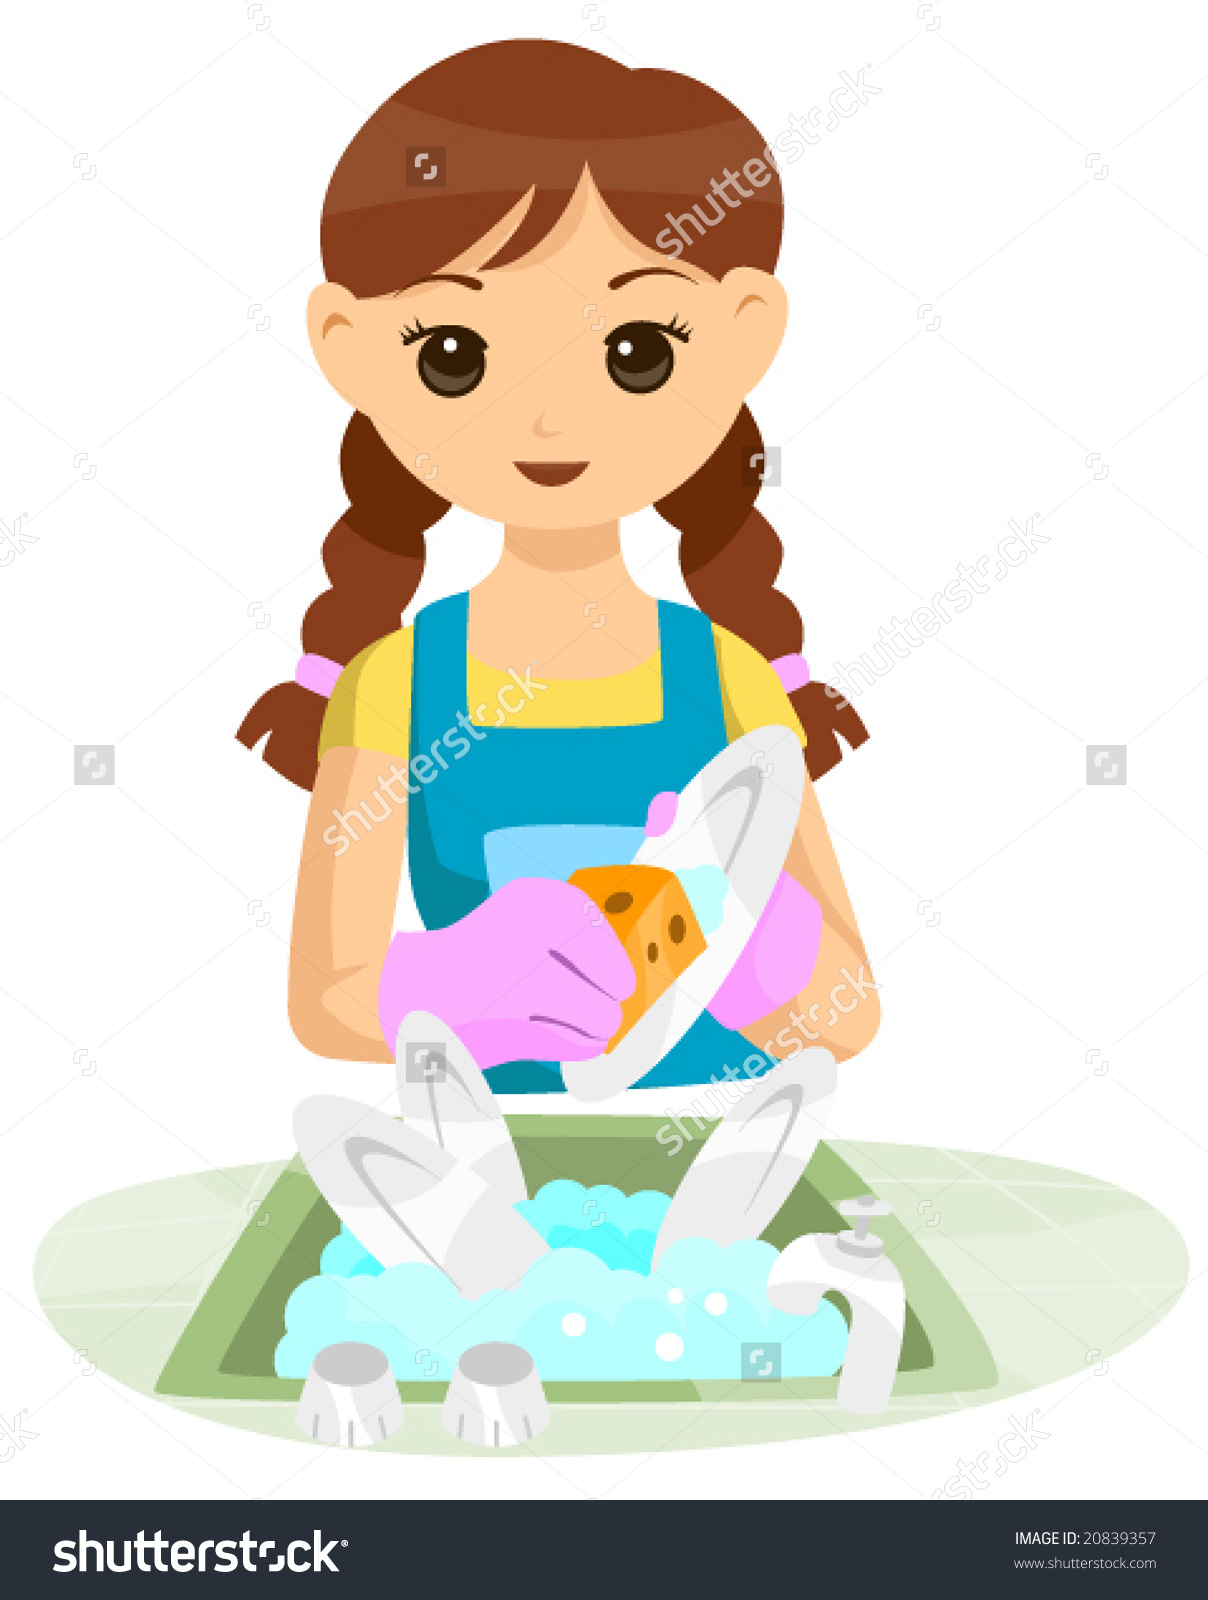 People clipart washing dish Clipart collections dishes dishes BBCpersian7